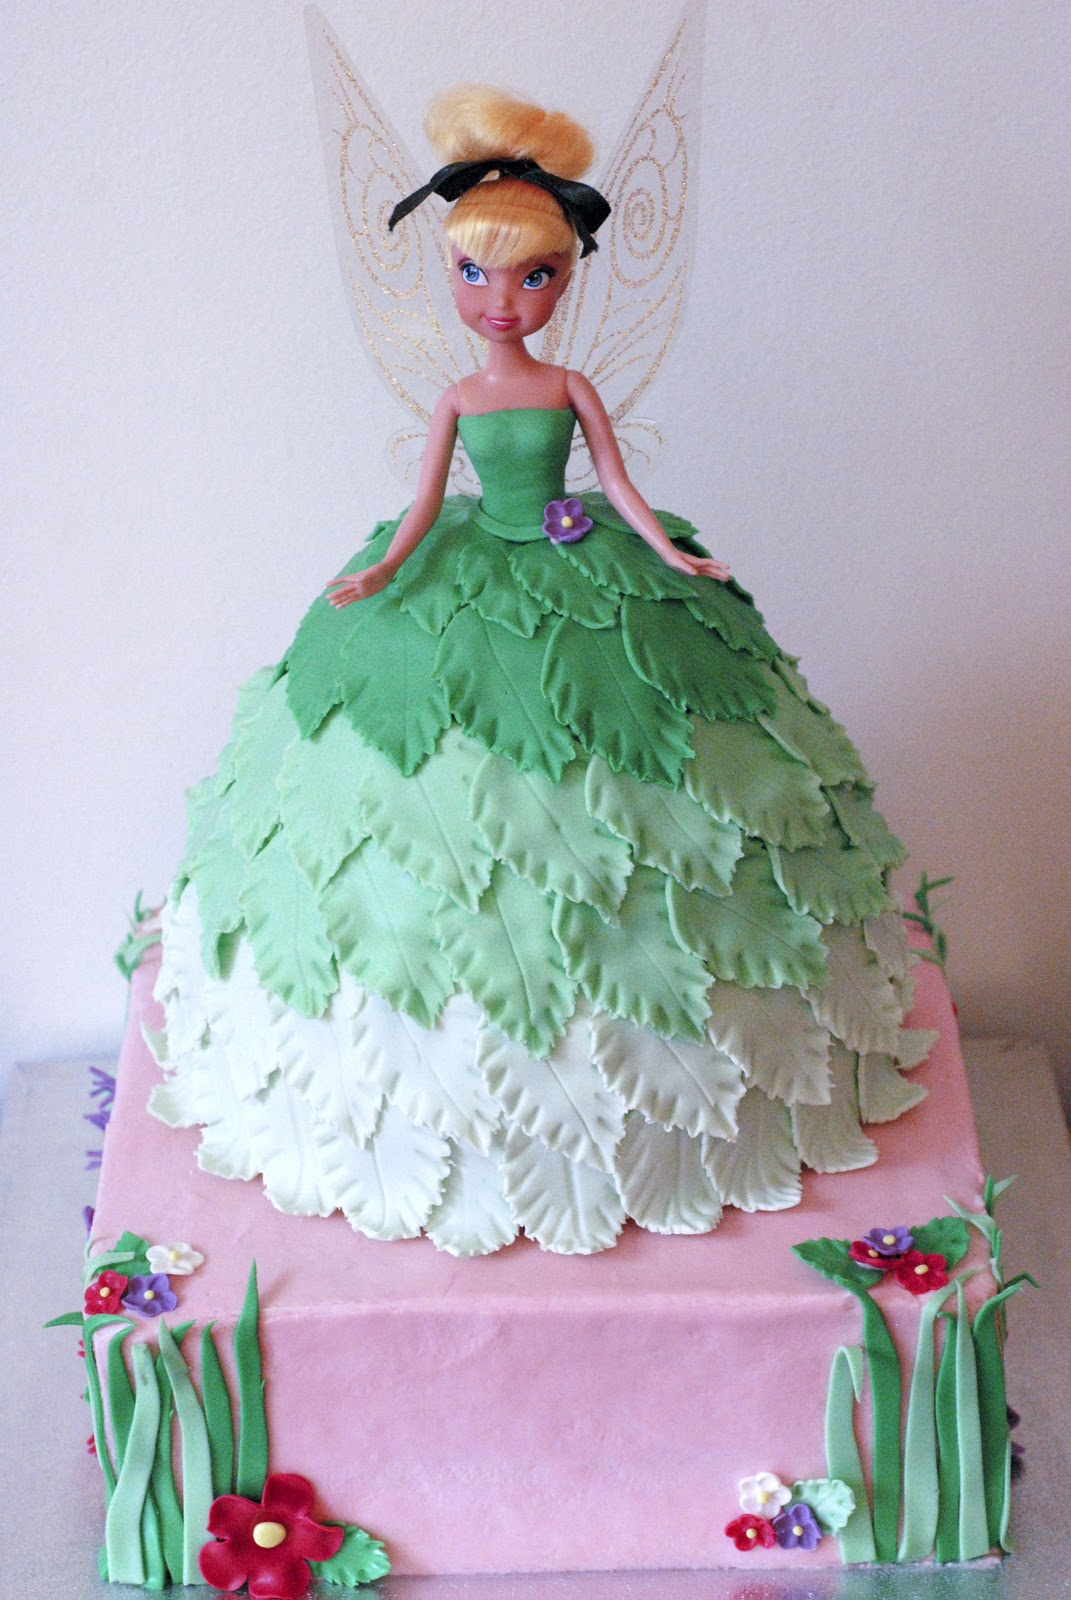 Night Baking: tinkerbell doll cake